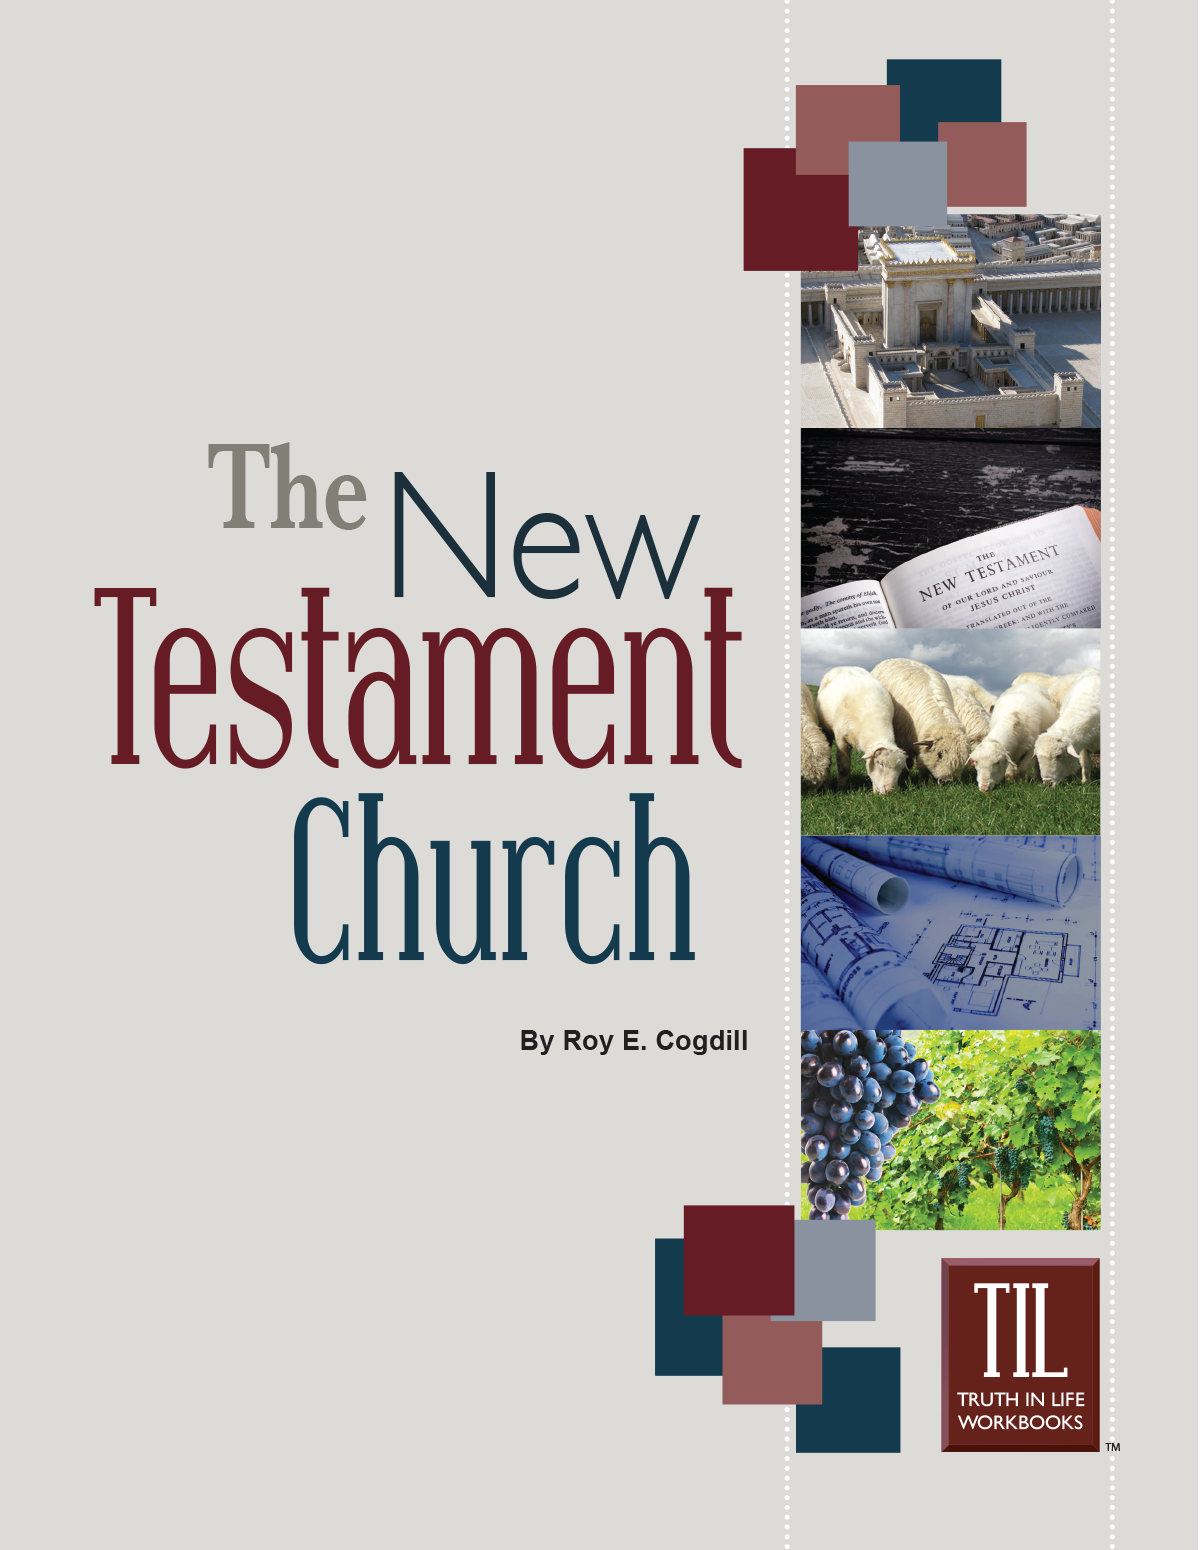 til-the-new-testament-church-cover-front.png